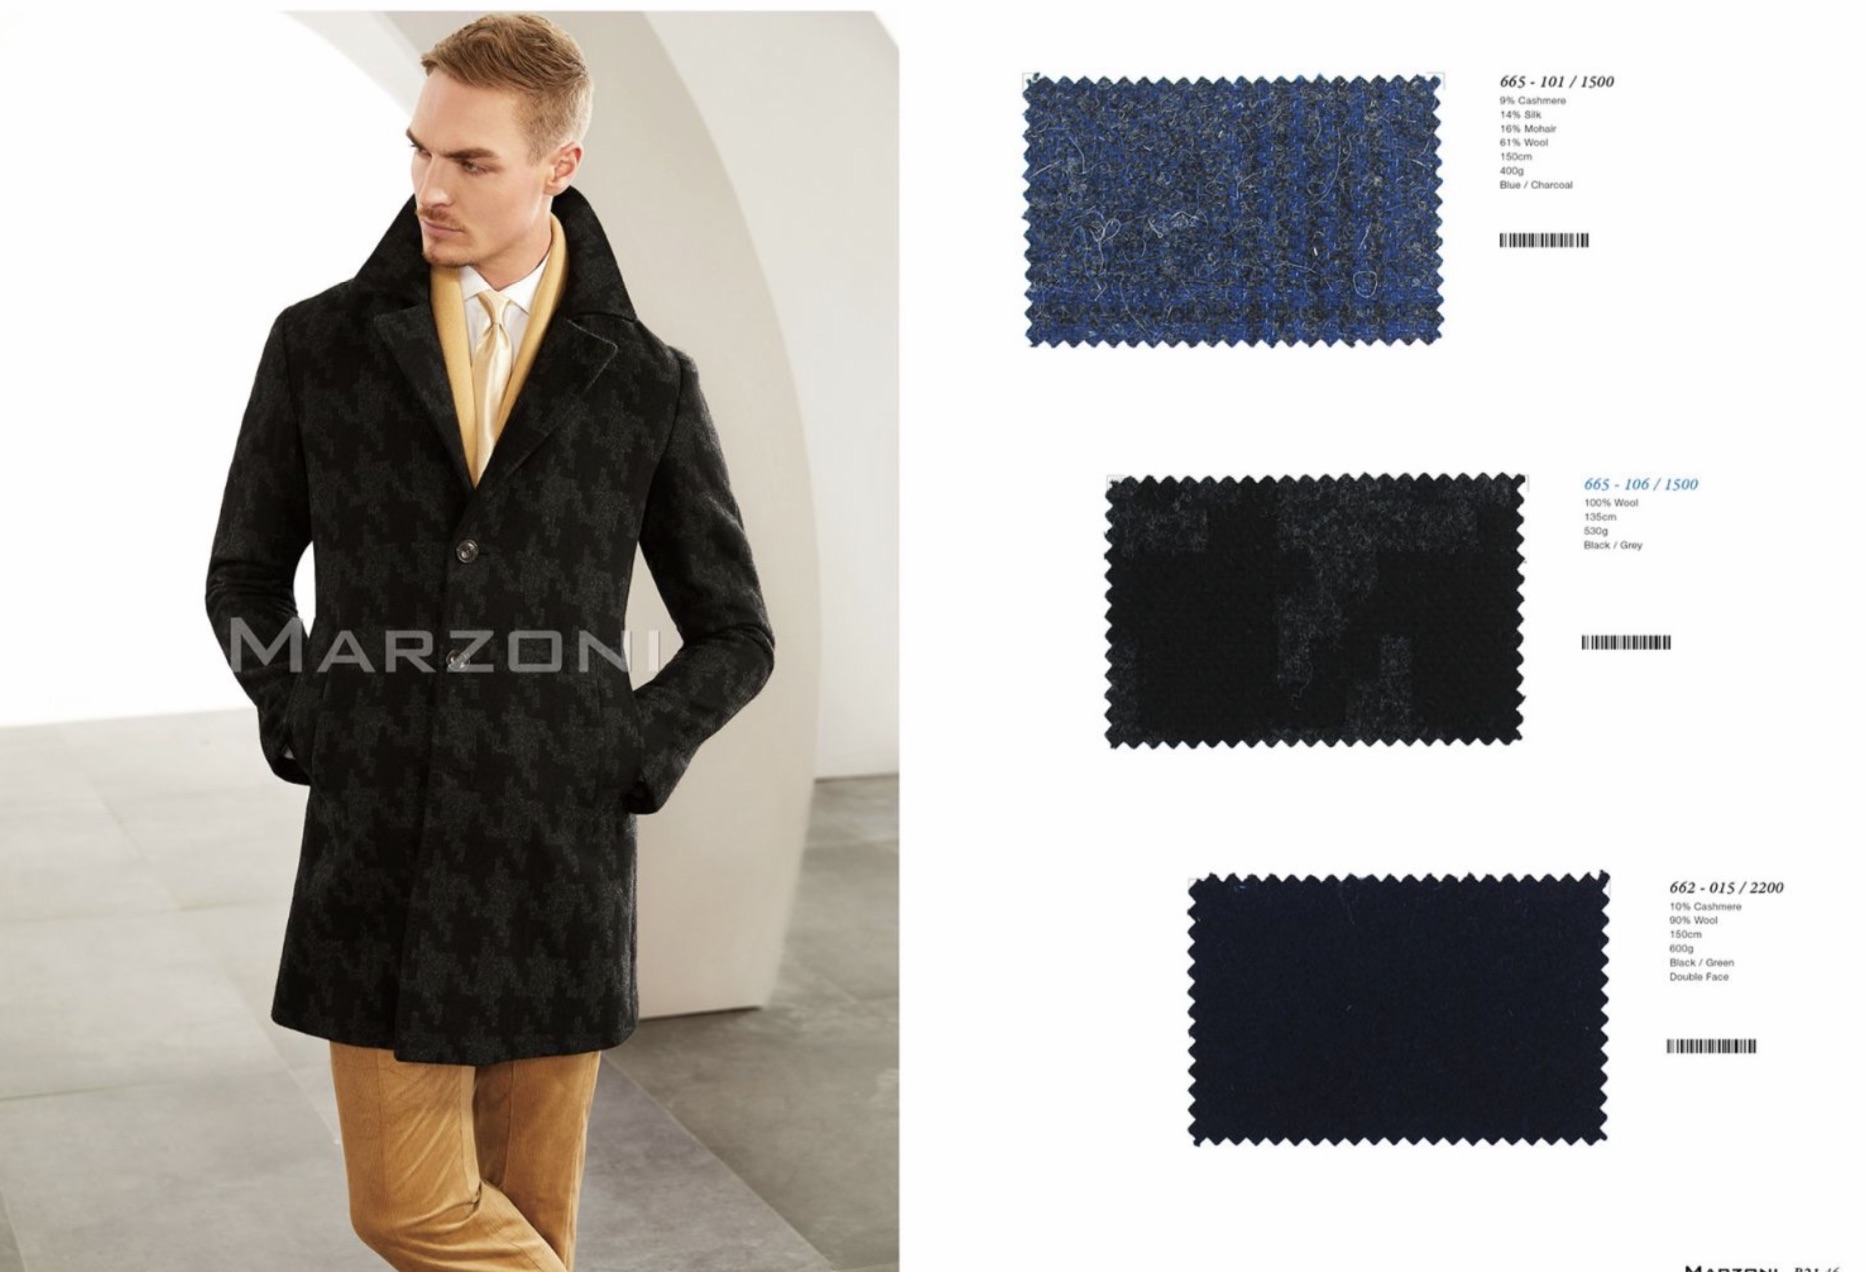 Marzoni Custom Topcoats by BlackScorpion | suit.style